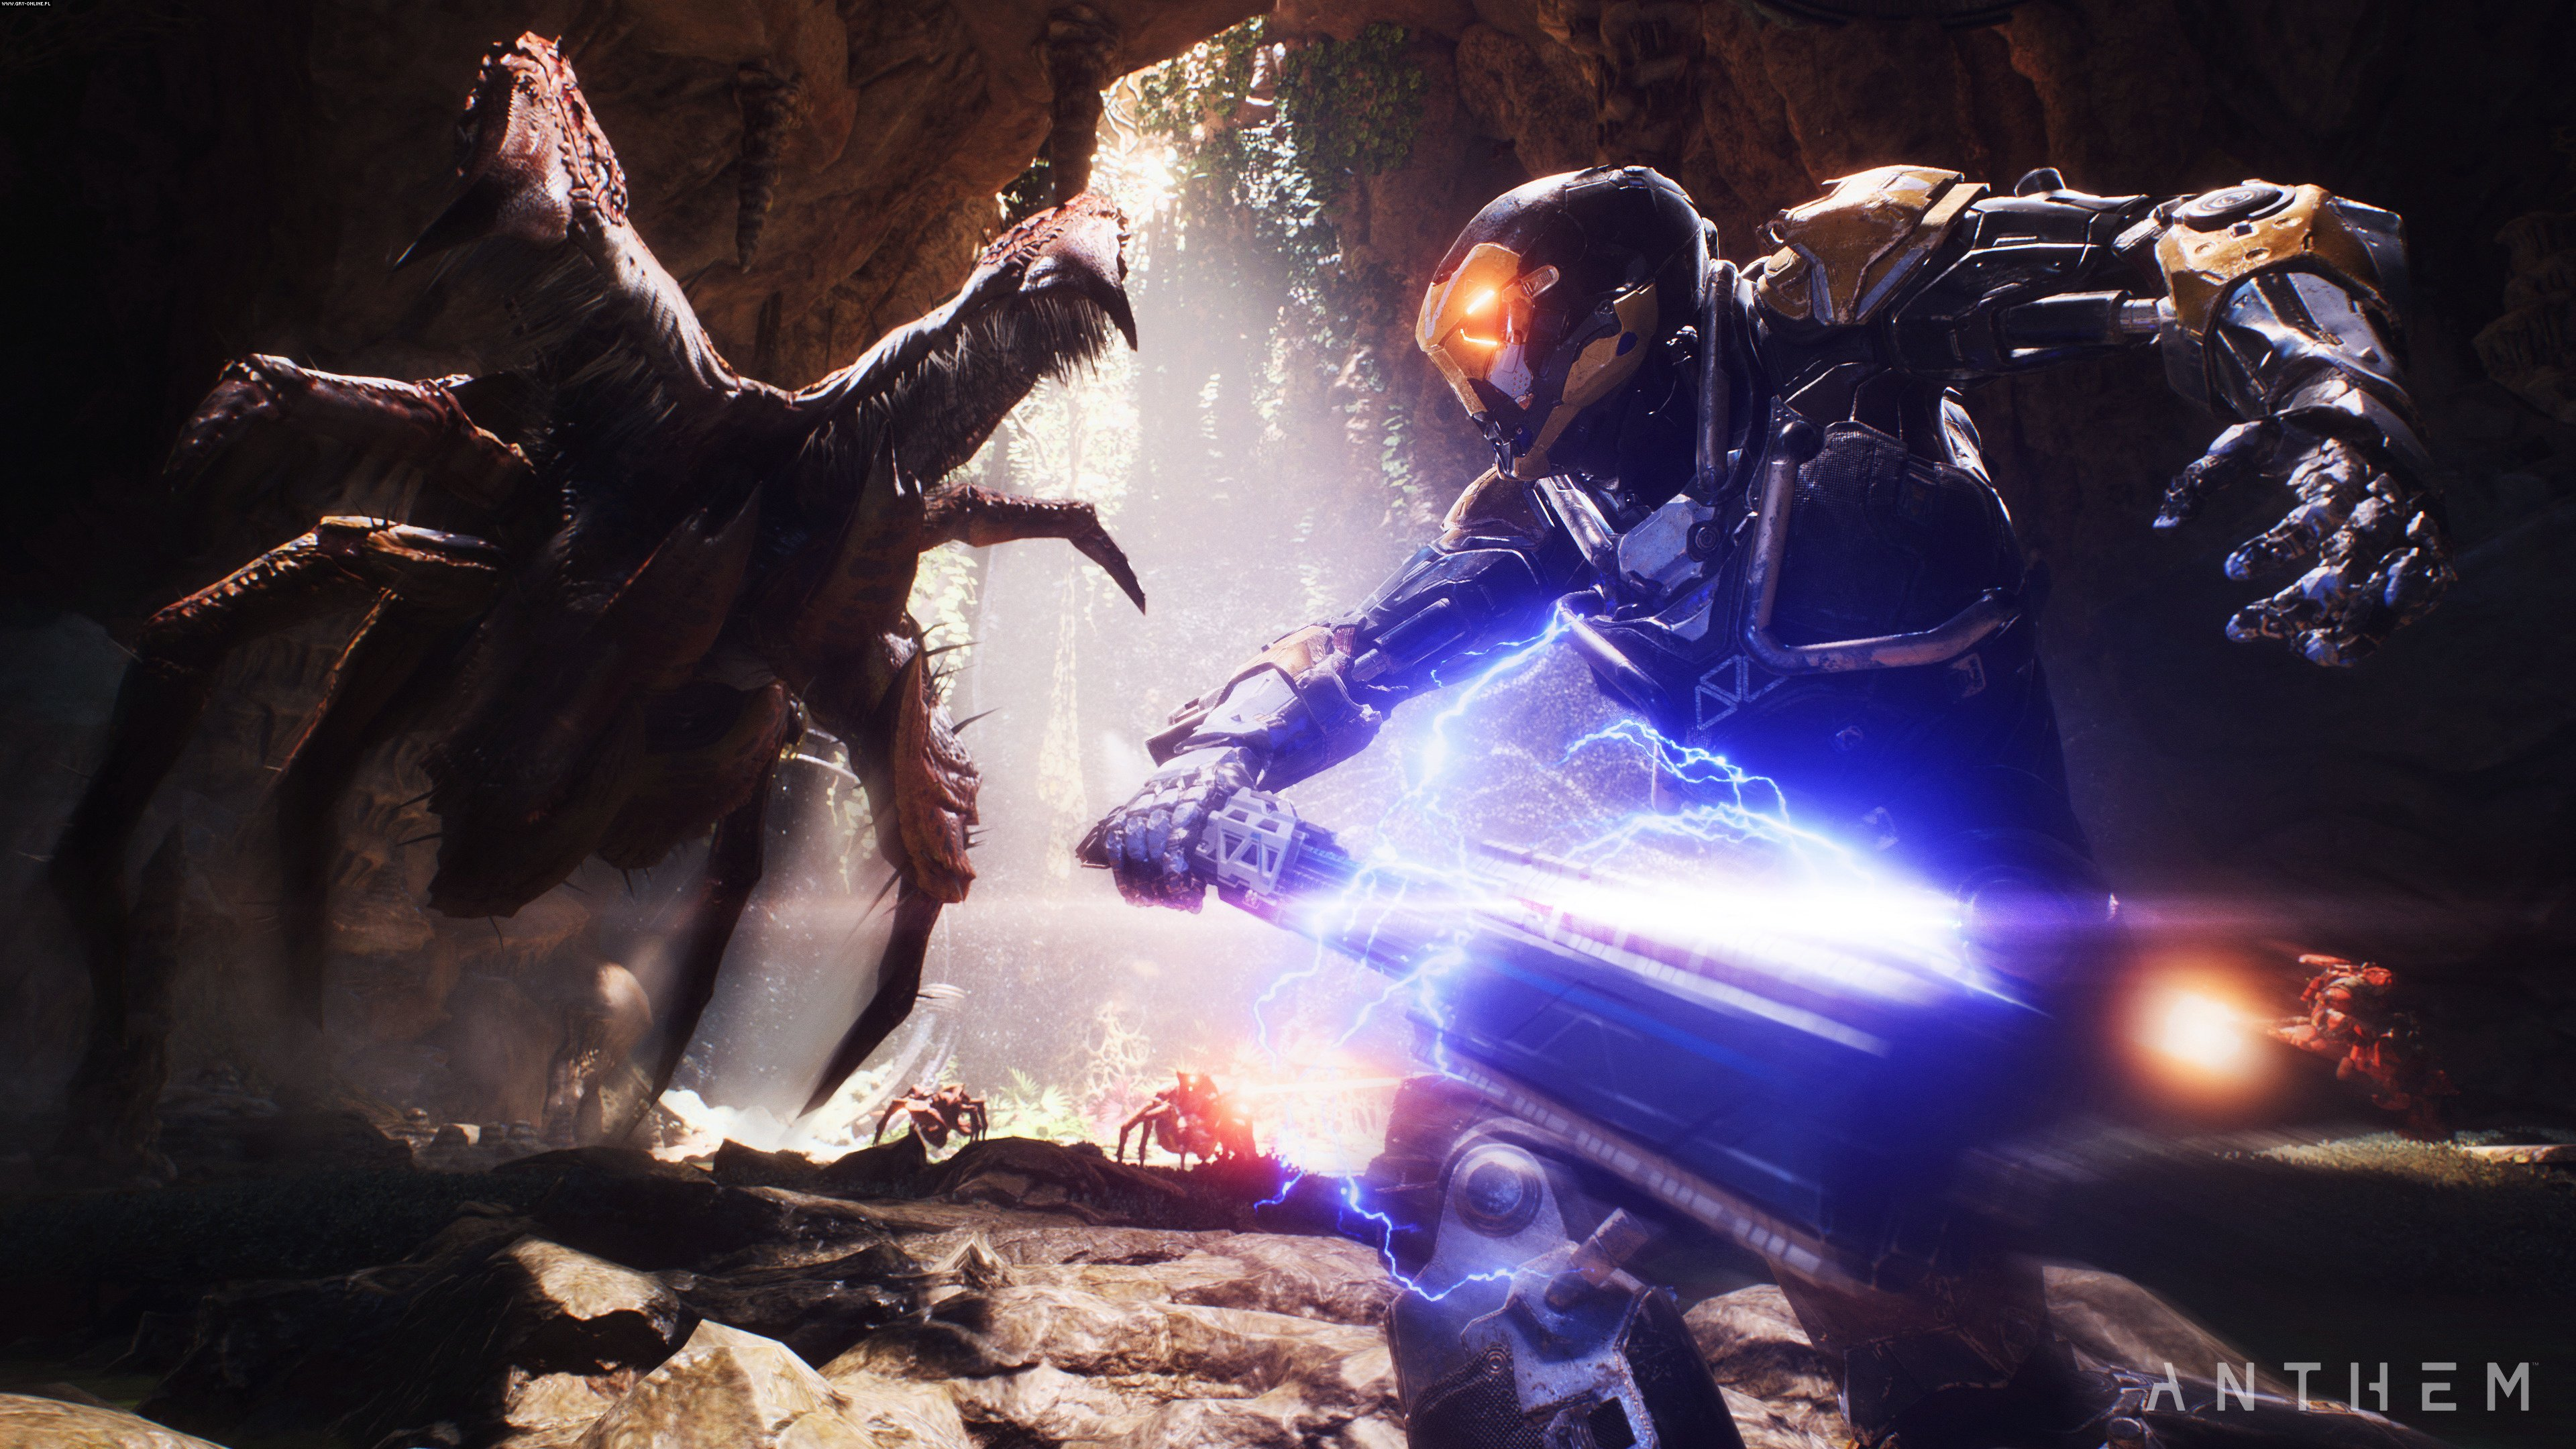 Anthem PC, PS4, XONE Games Image 30/34, BioWare Corporation, Electronic Arts Inc.